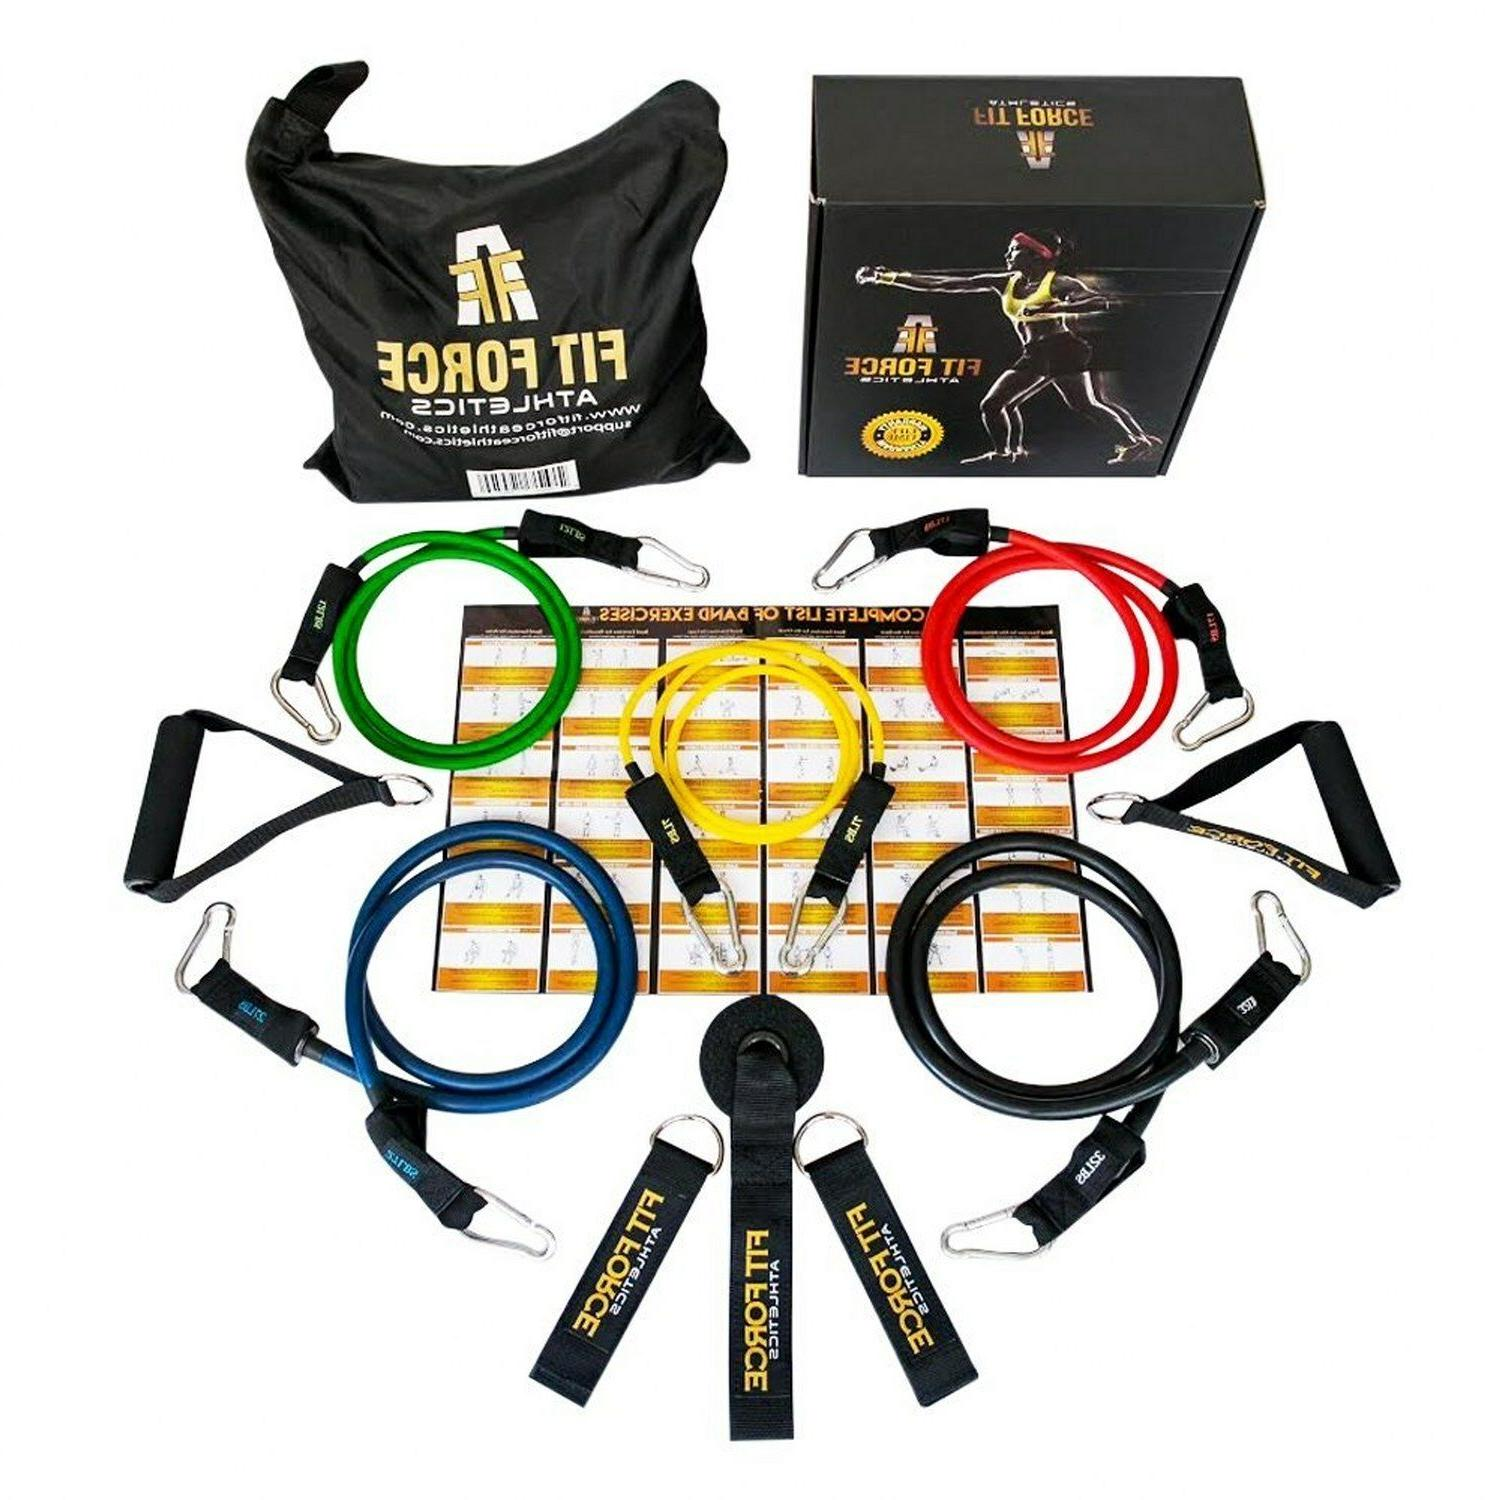 exercise equipment workout set 15 pcshome gym